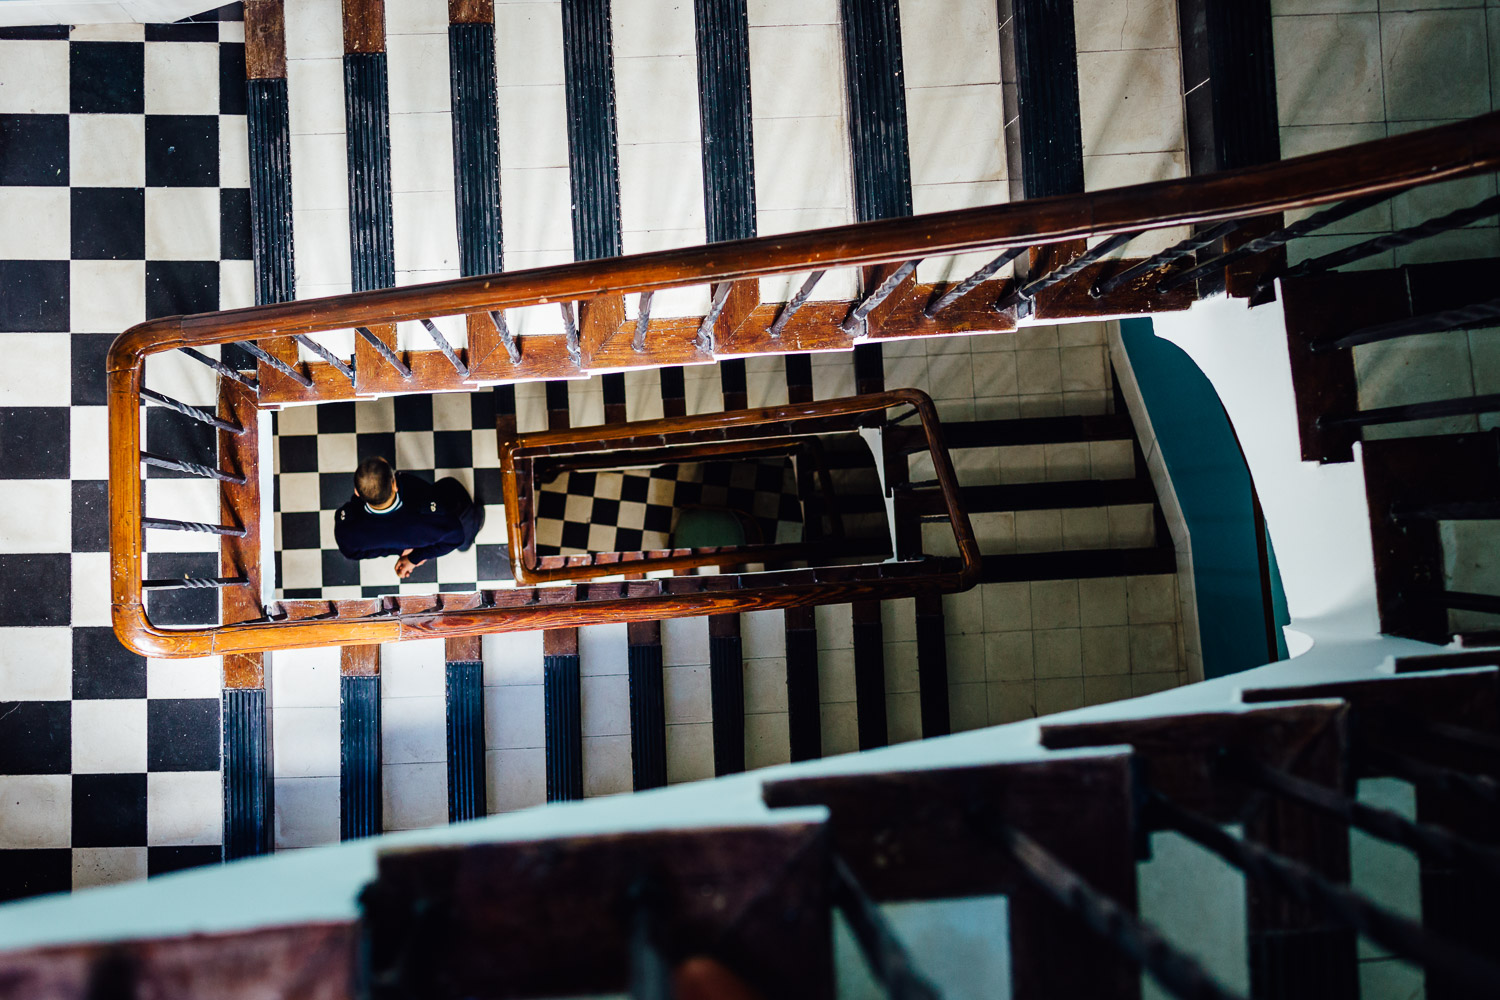 Checker-Stairwell-Durazo-Photography-Project-Travel-Street.jpg